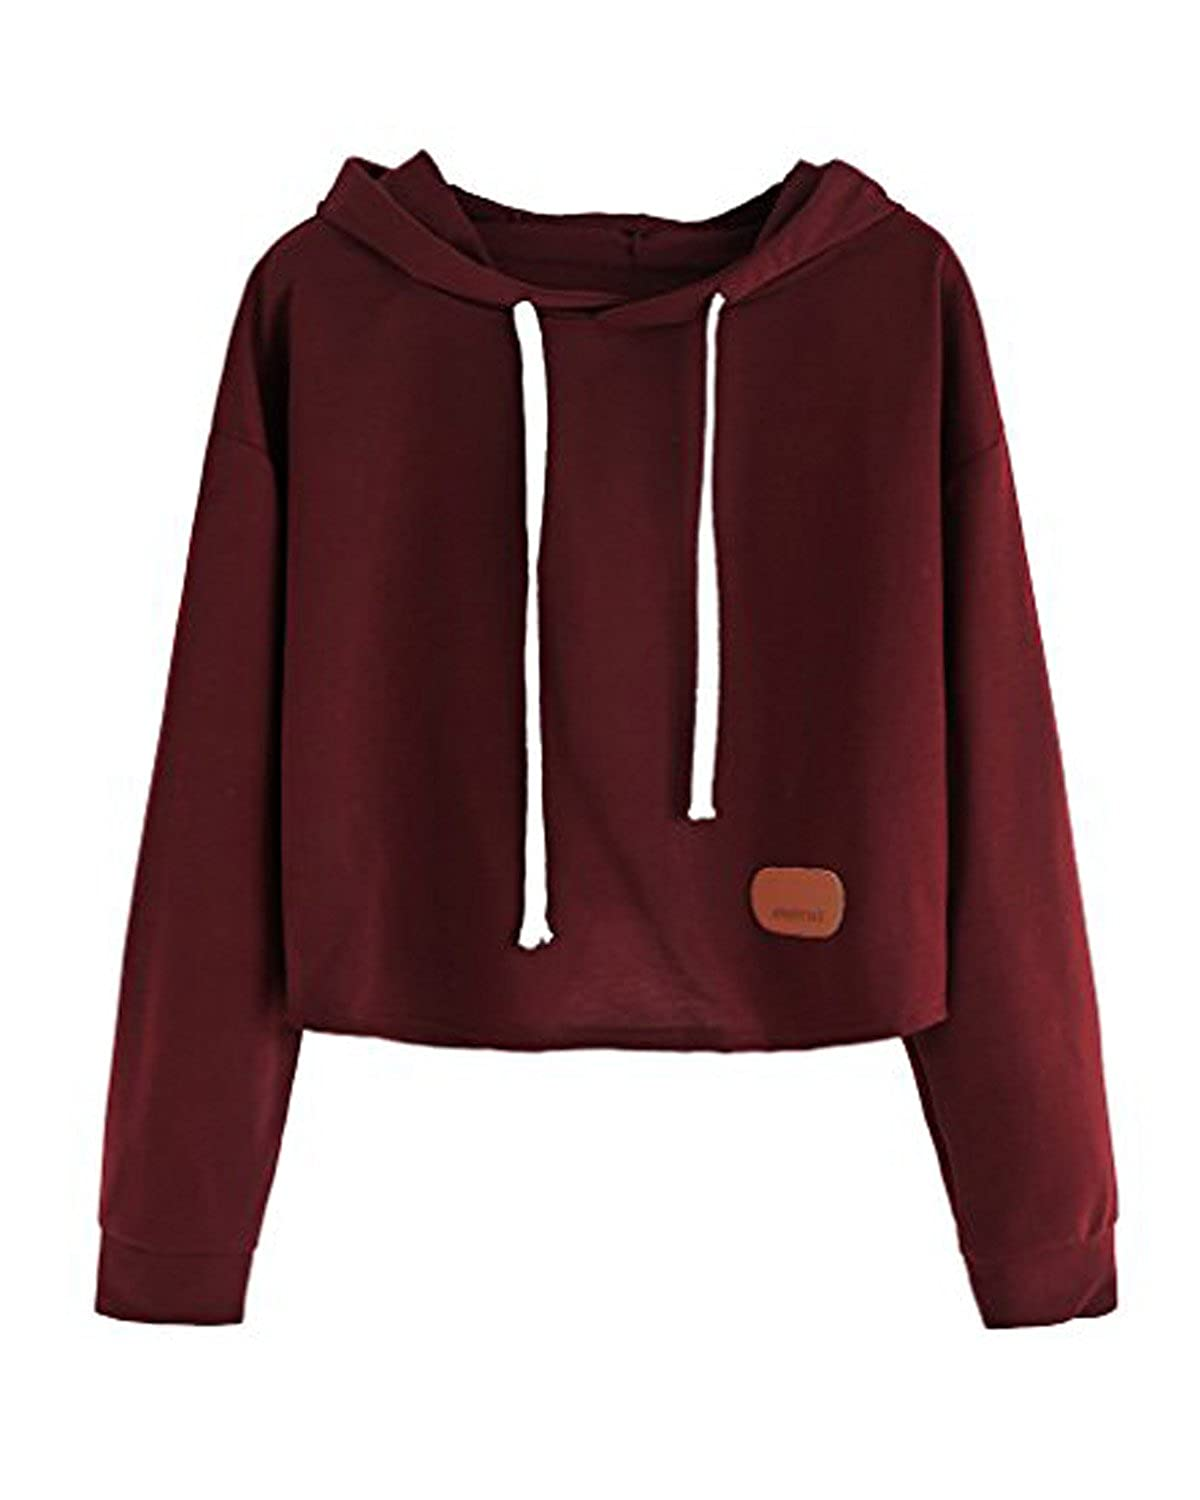 8ce5f1029d91 Maybest Women Autumn Fashion Hoodies Long Sleeves Shirts Sweatershirt Crop  Top Pullover Sports Tops Sweater Black One Size at Amazon Women s Clothing  store